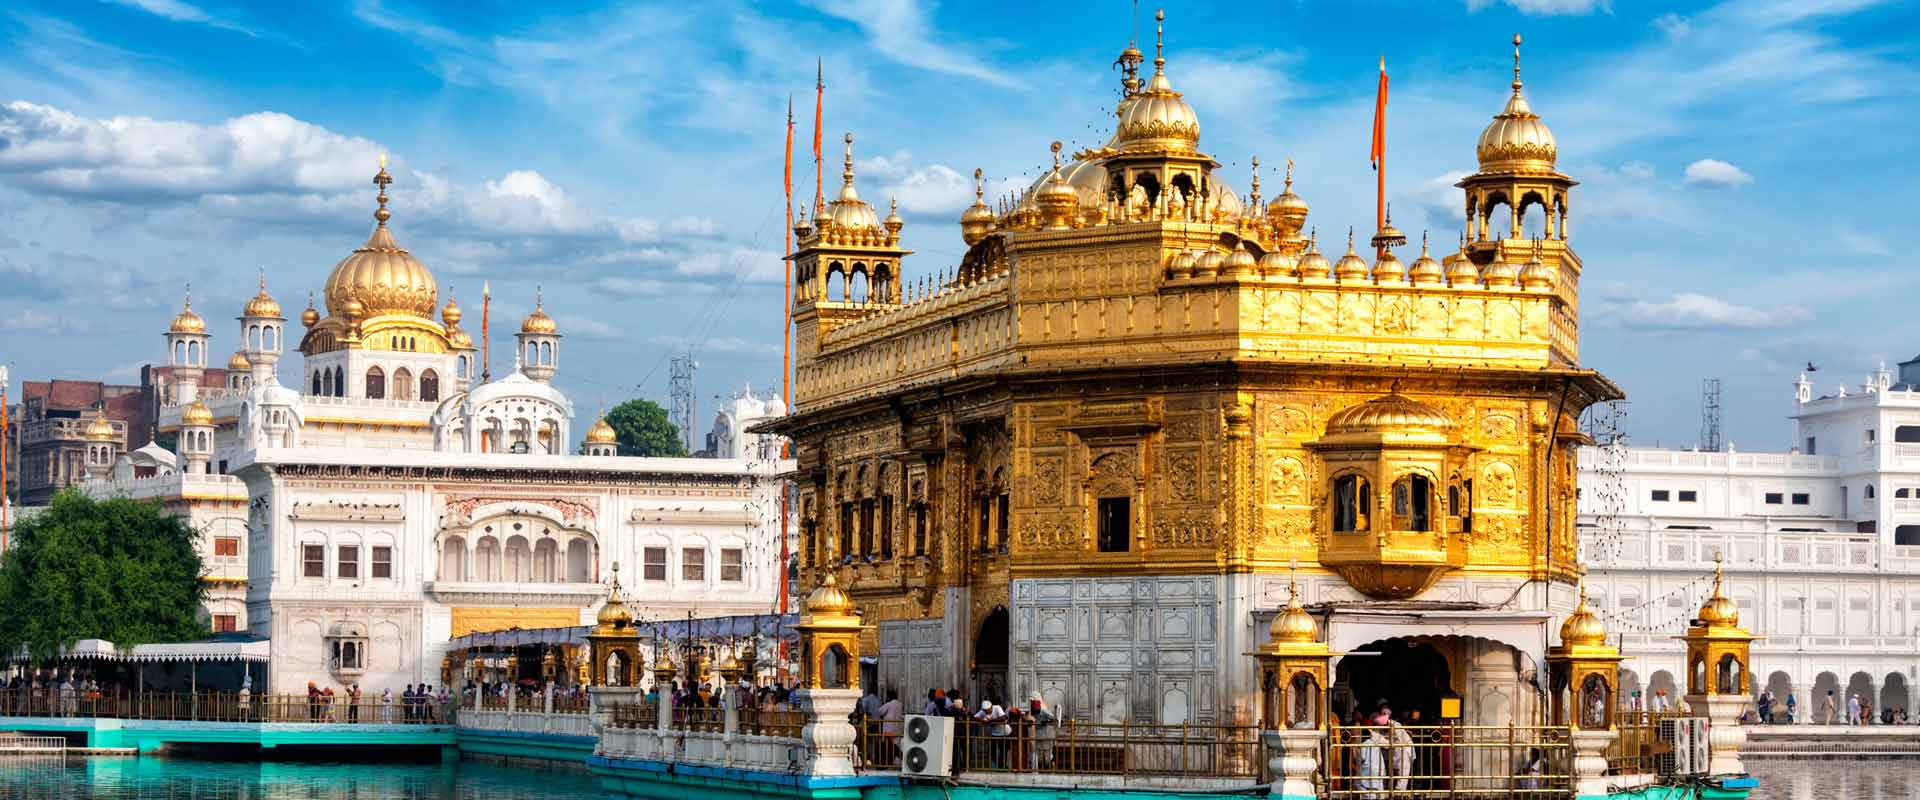 HIMACHAL AND GOLDEN TEMPLE